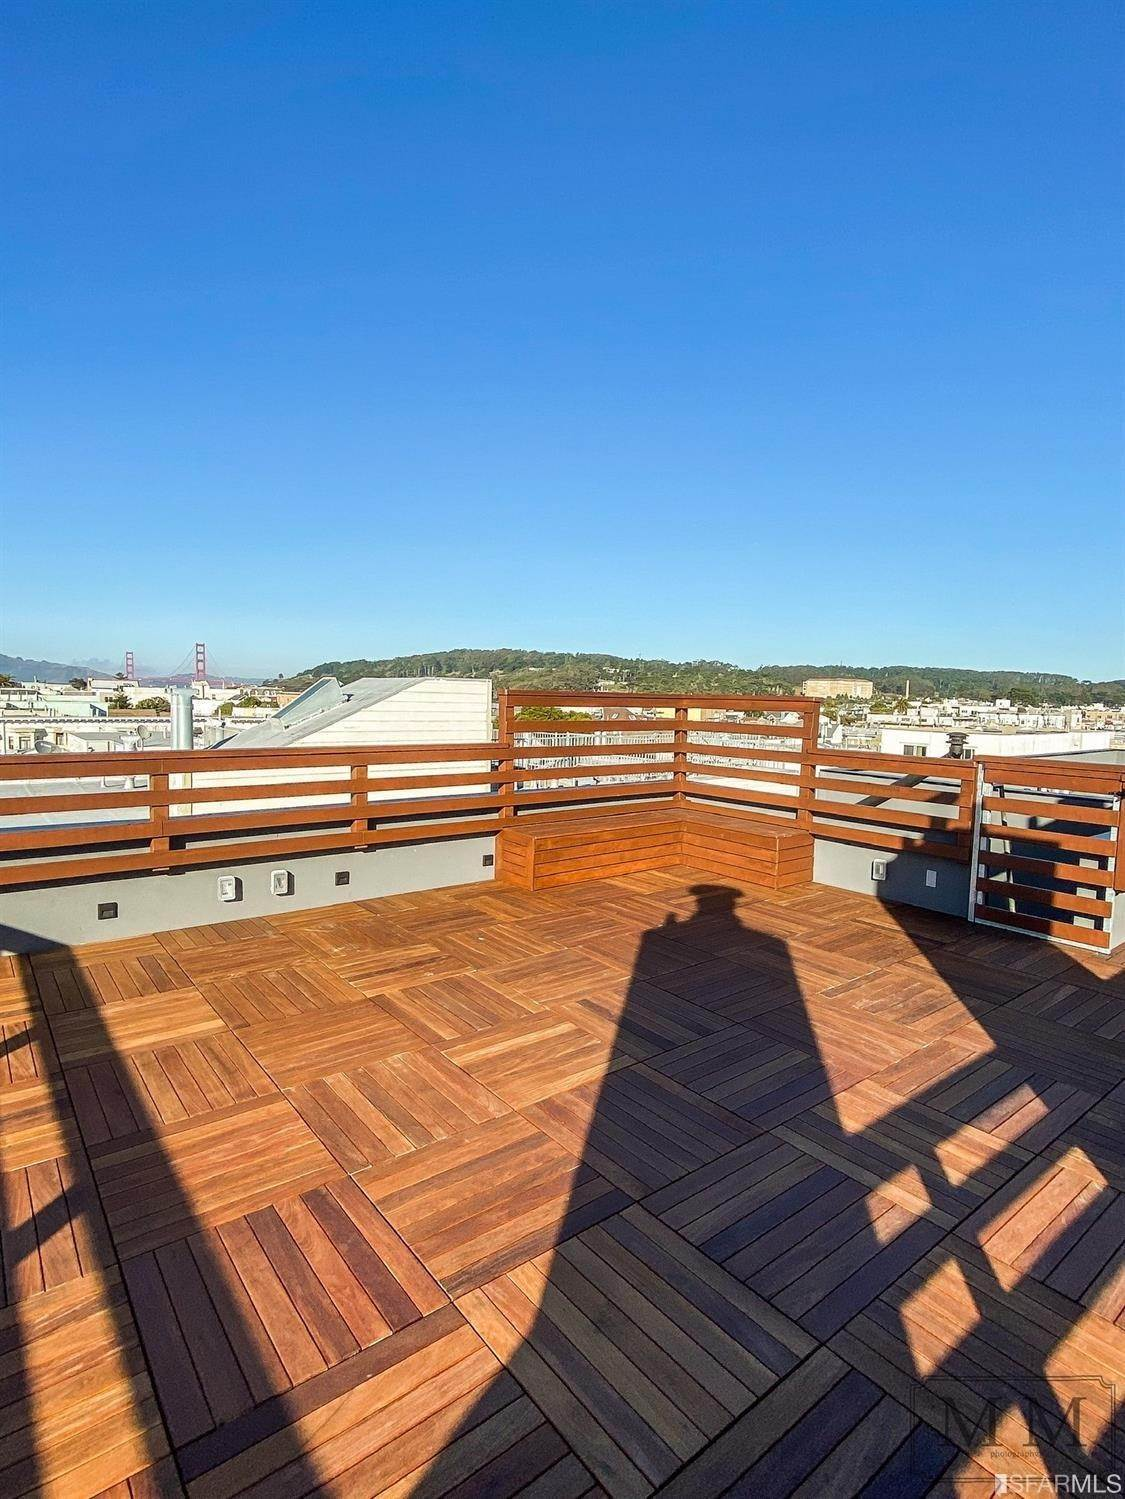 Tenancy In Common for Sale at 340 25th Avenue San Francisco, California 94121 United States